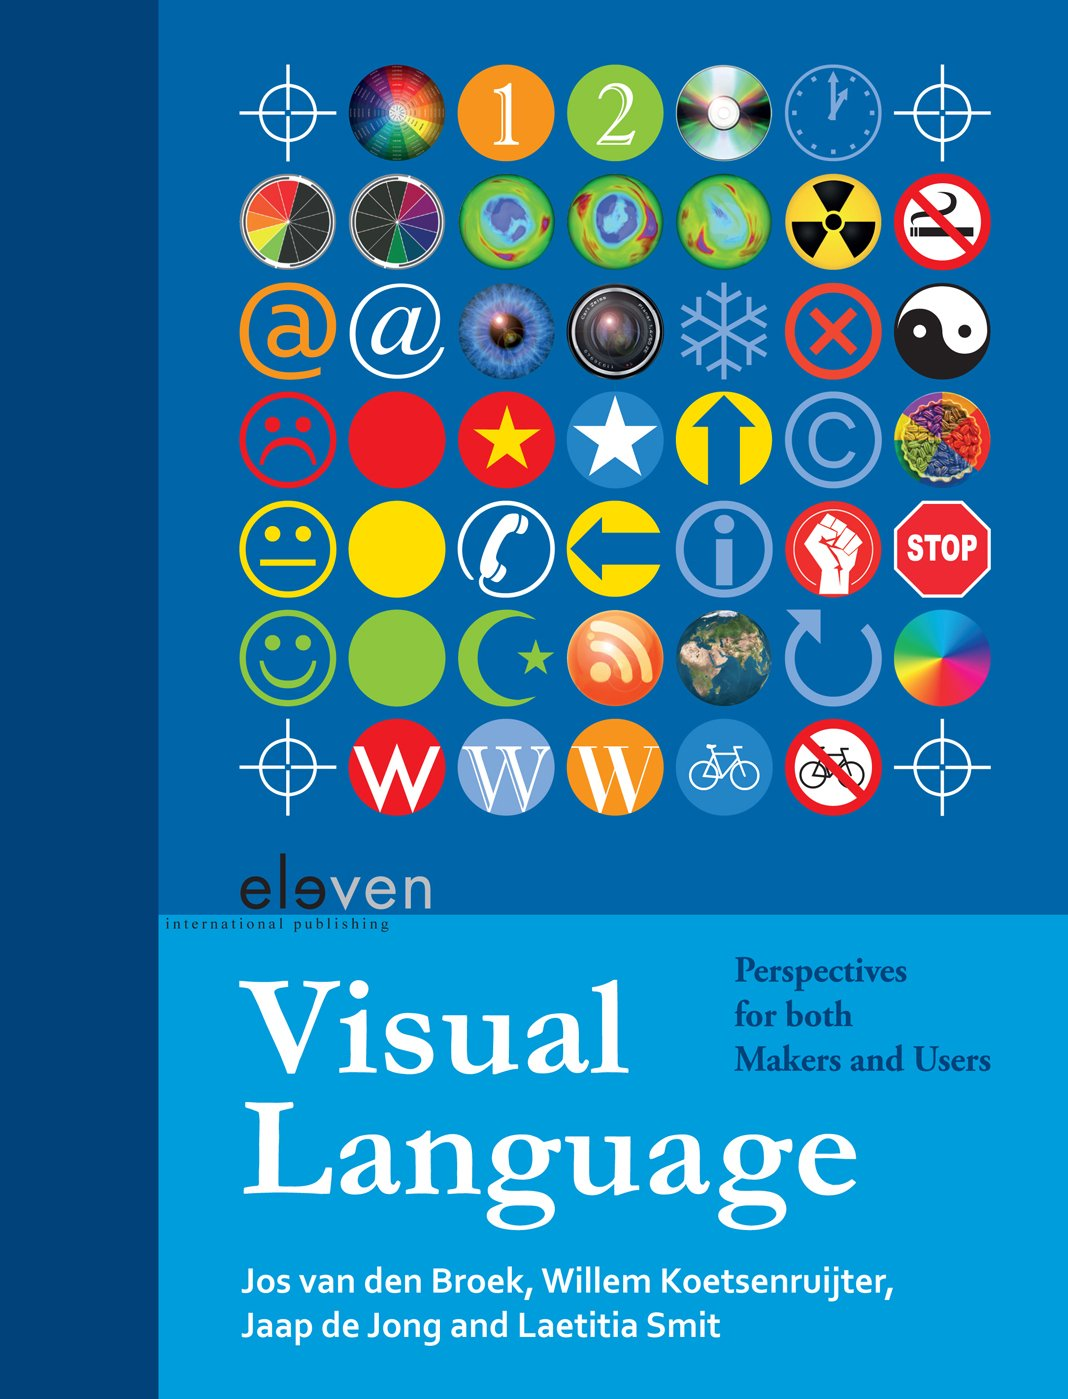 Visual Language: Perspectives for Both Makers and Users by Eleven International Publishing